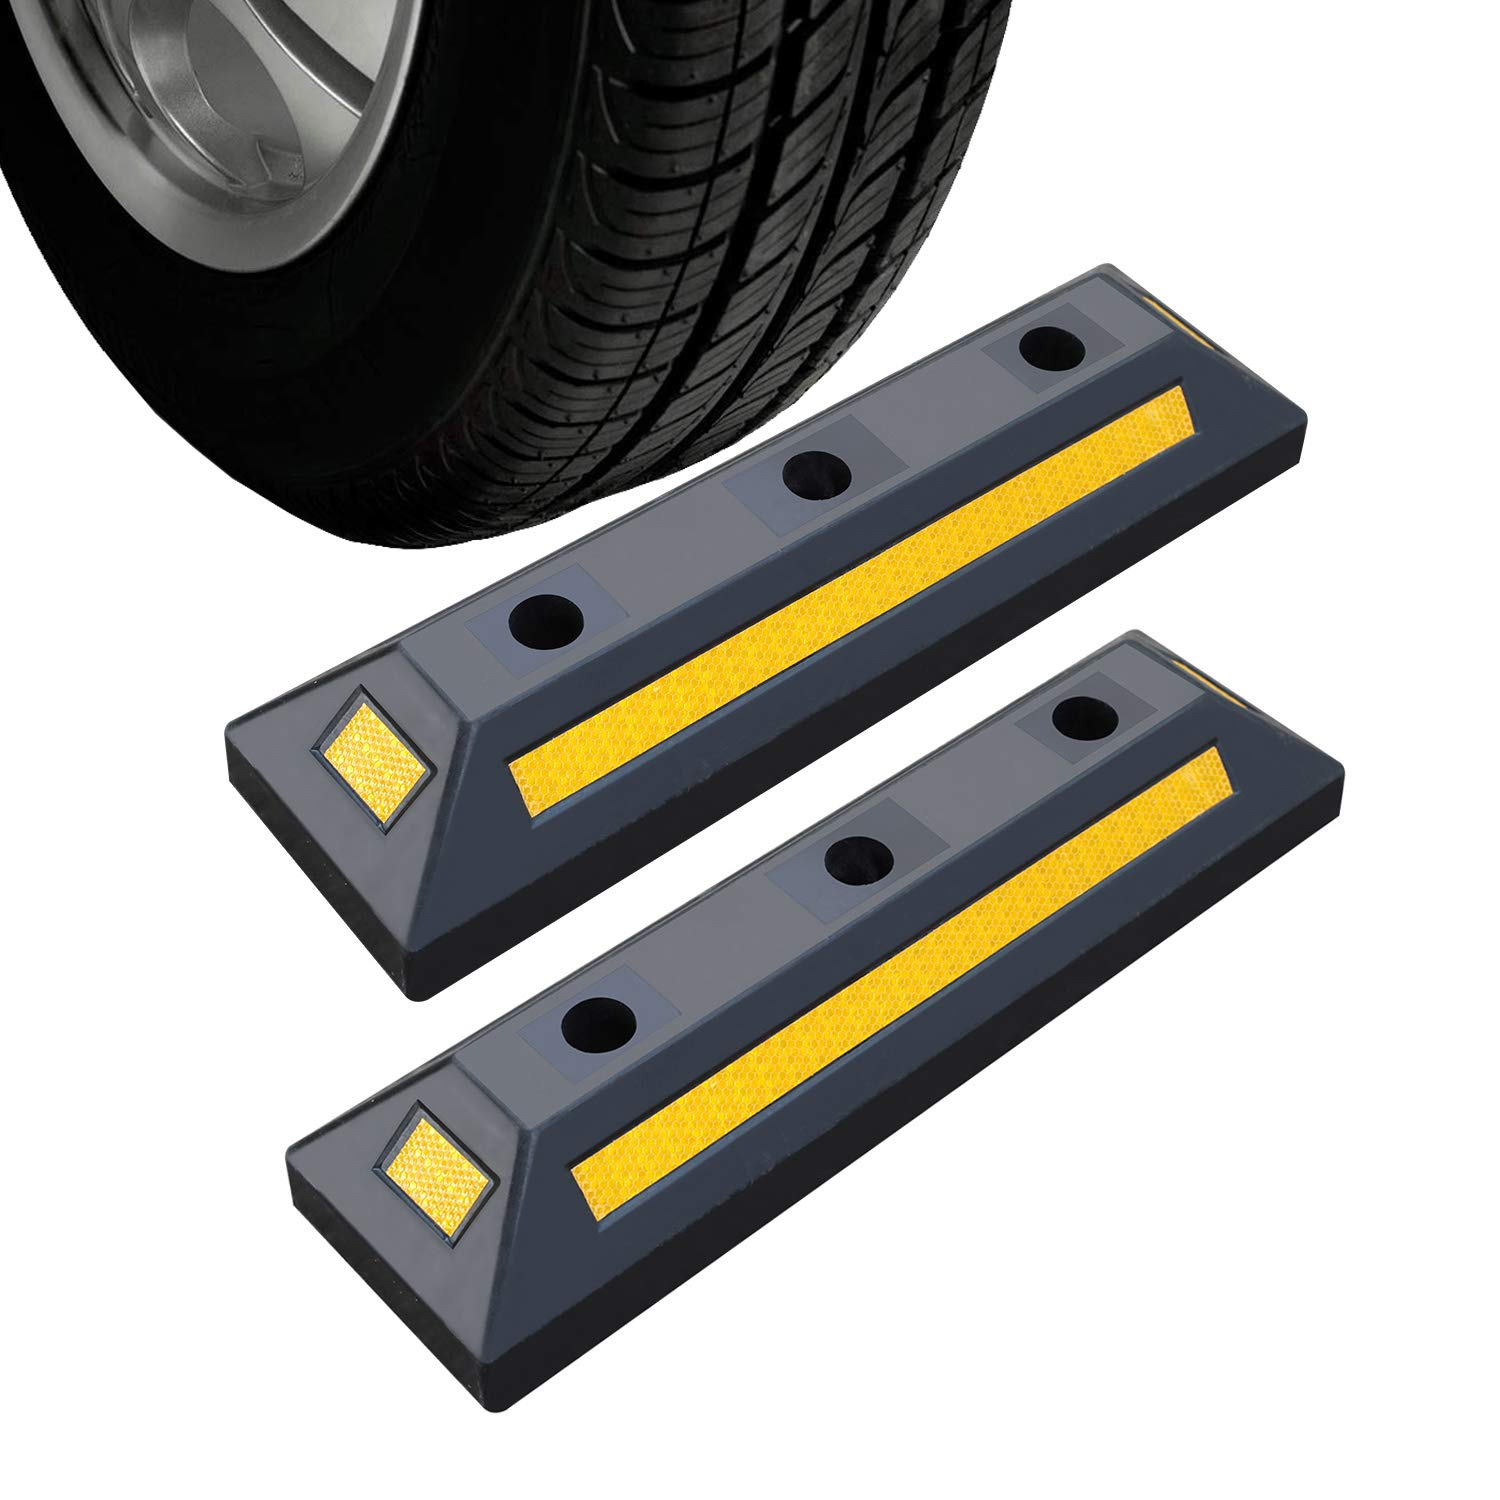 2 Pack Heavy Duty Rubber Parking Blocks Wheel Stop for Car Garage Parks Wheel Stop Stoppers Professional Grade Parking Rubber Block Curb w/Yellow Refective Stripes for Truck RV, Trailer 21.25''(L) by Reliancer